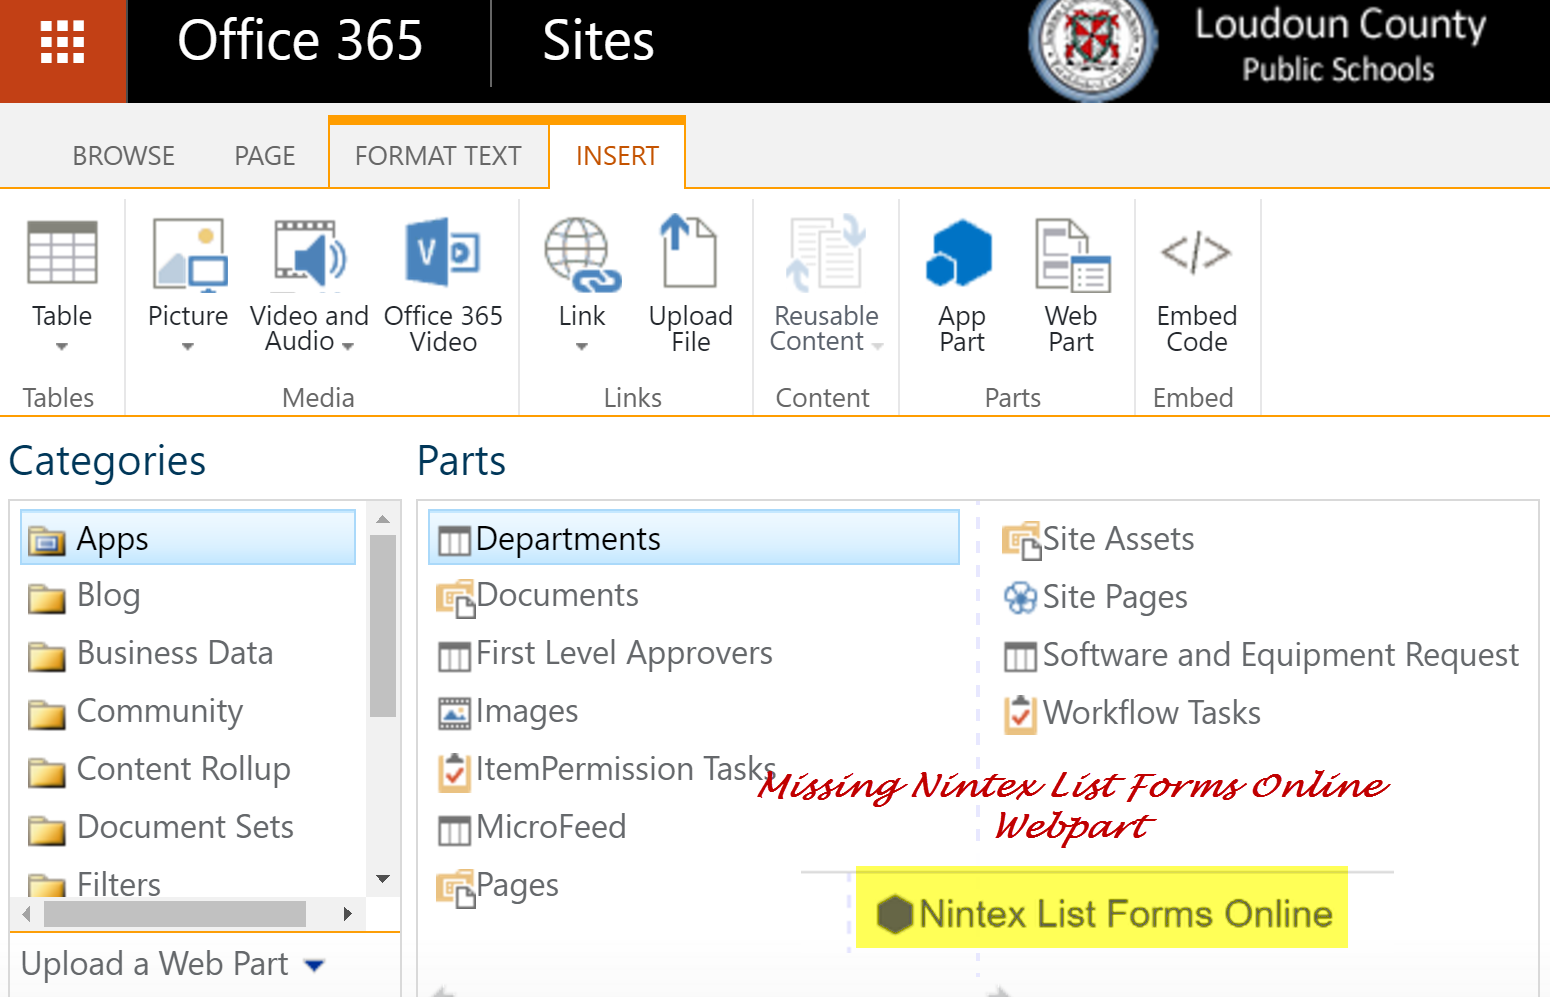 Missing Nintex Forms Icon – Fix – Office 365 Cloud Productivity Posts